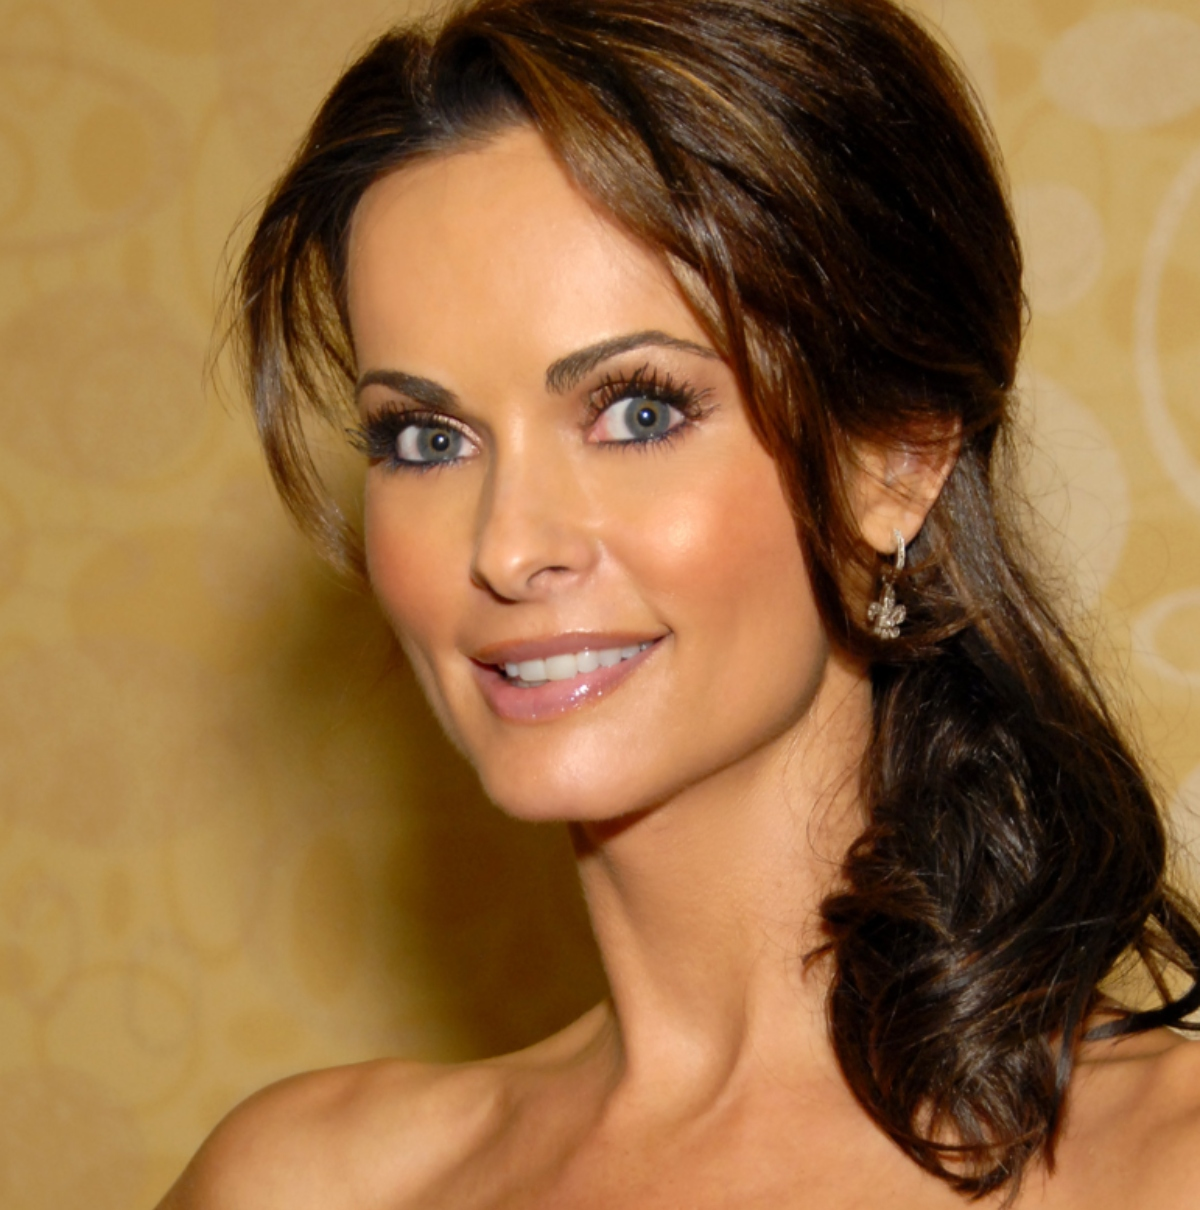 Headshot of former Playboy model Karen McDougal smiling